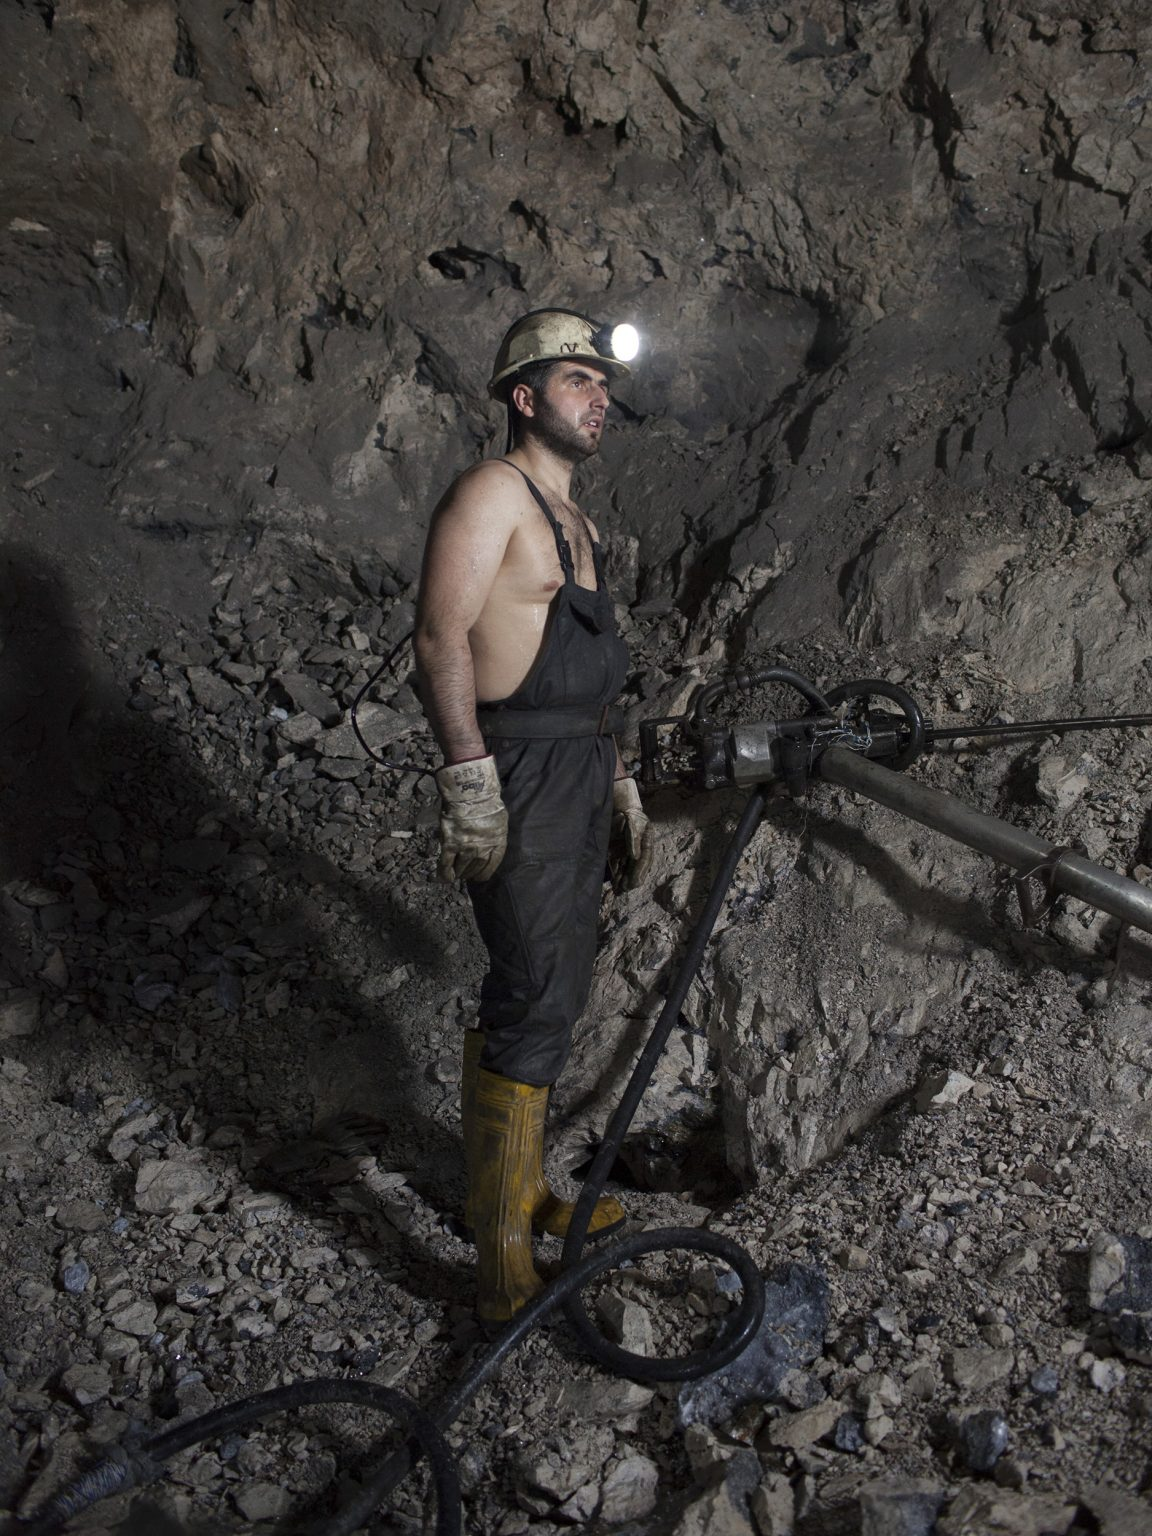 Edmond Selimi, a miner in the Trepca mining complex, portrayed 600 meters below surface.  The Trepca mine is disputed between Serbia and Kosovo.